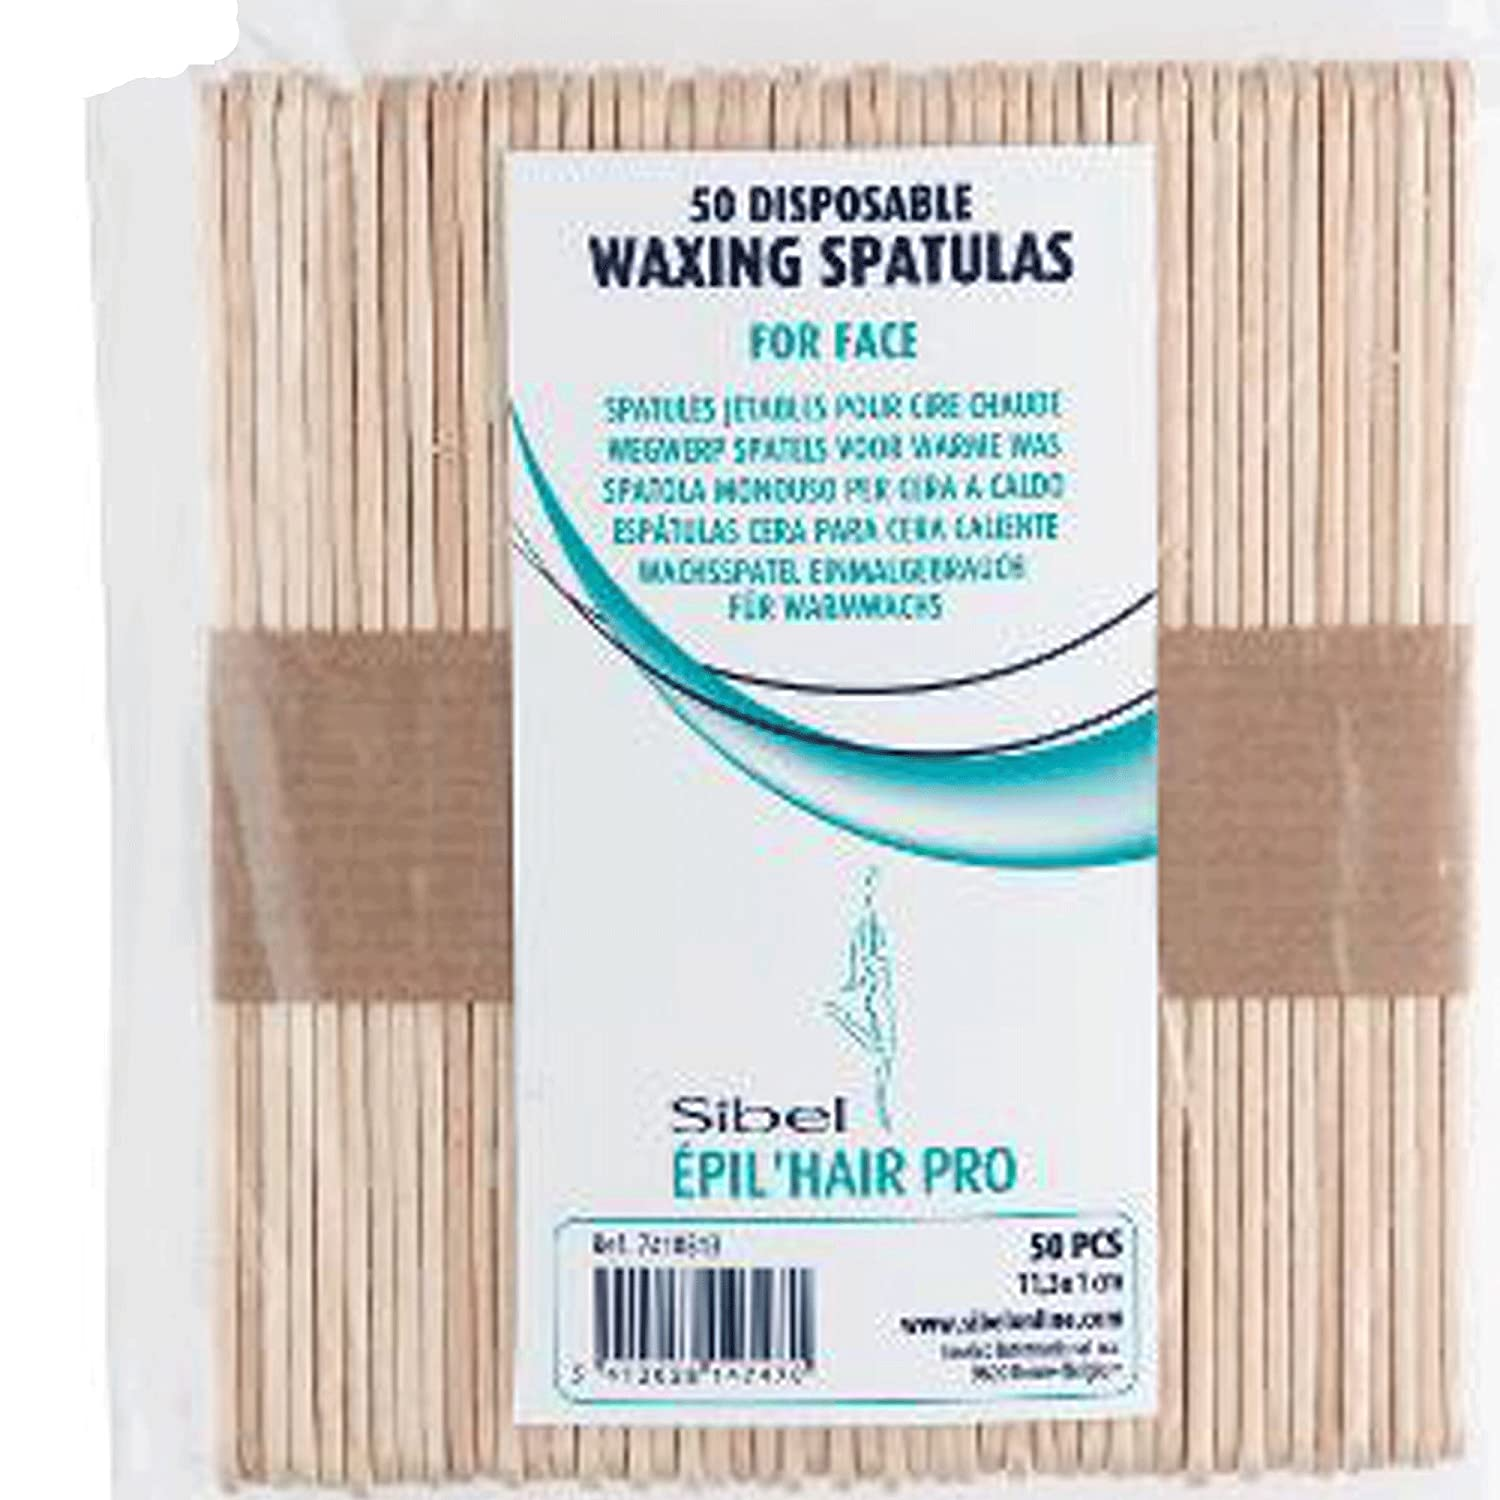 Disposable waxing spatula's For facial use - Pack of 50 Sibel SB7410513